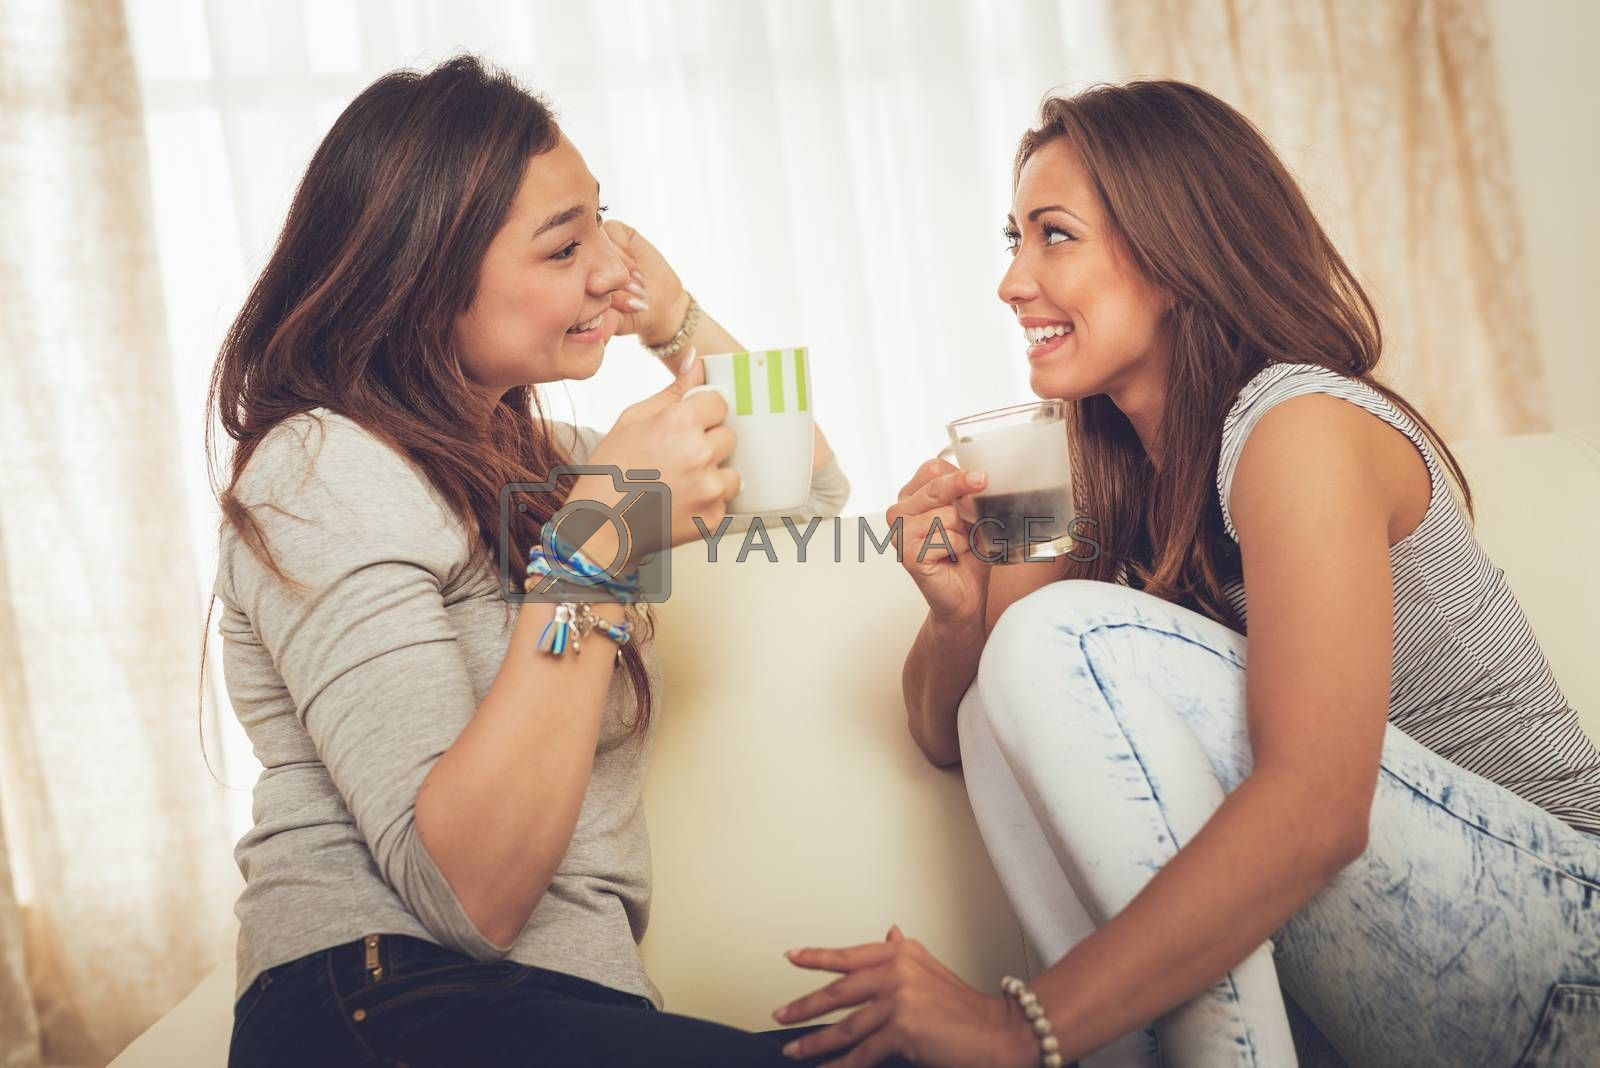 Two young cheerful female friends enjoying coffee and talking in an apartment.